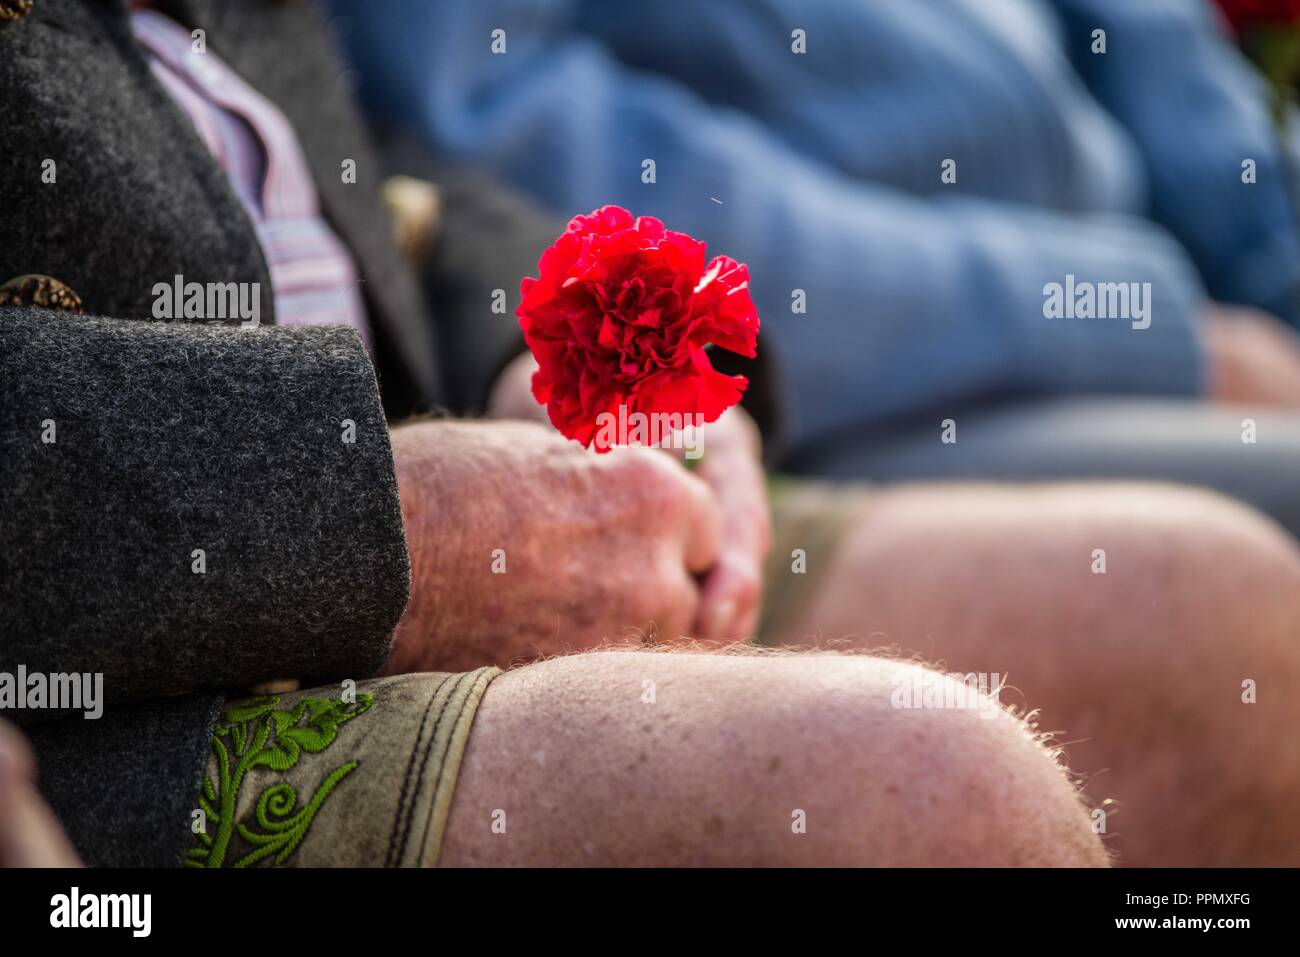 Munich, Bavaria, Germany. 26th Sep, 2018. A man in traditional Bavarian clothing holds a rose for the victims of the 1980 Oktoberfest terror attack. The Oktoberfest terror bombing was carried out by Gundolf Koehler, who died in the bombing, along with thirteen victims. Over 225 were injured. The case remains controversial due to the suspicions that more accomplices remain at large. Credit: ZUMA Press, Inc./Alamy Live News - Stock Image